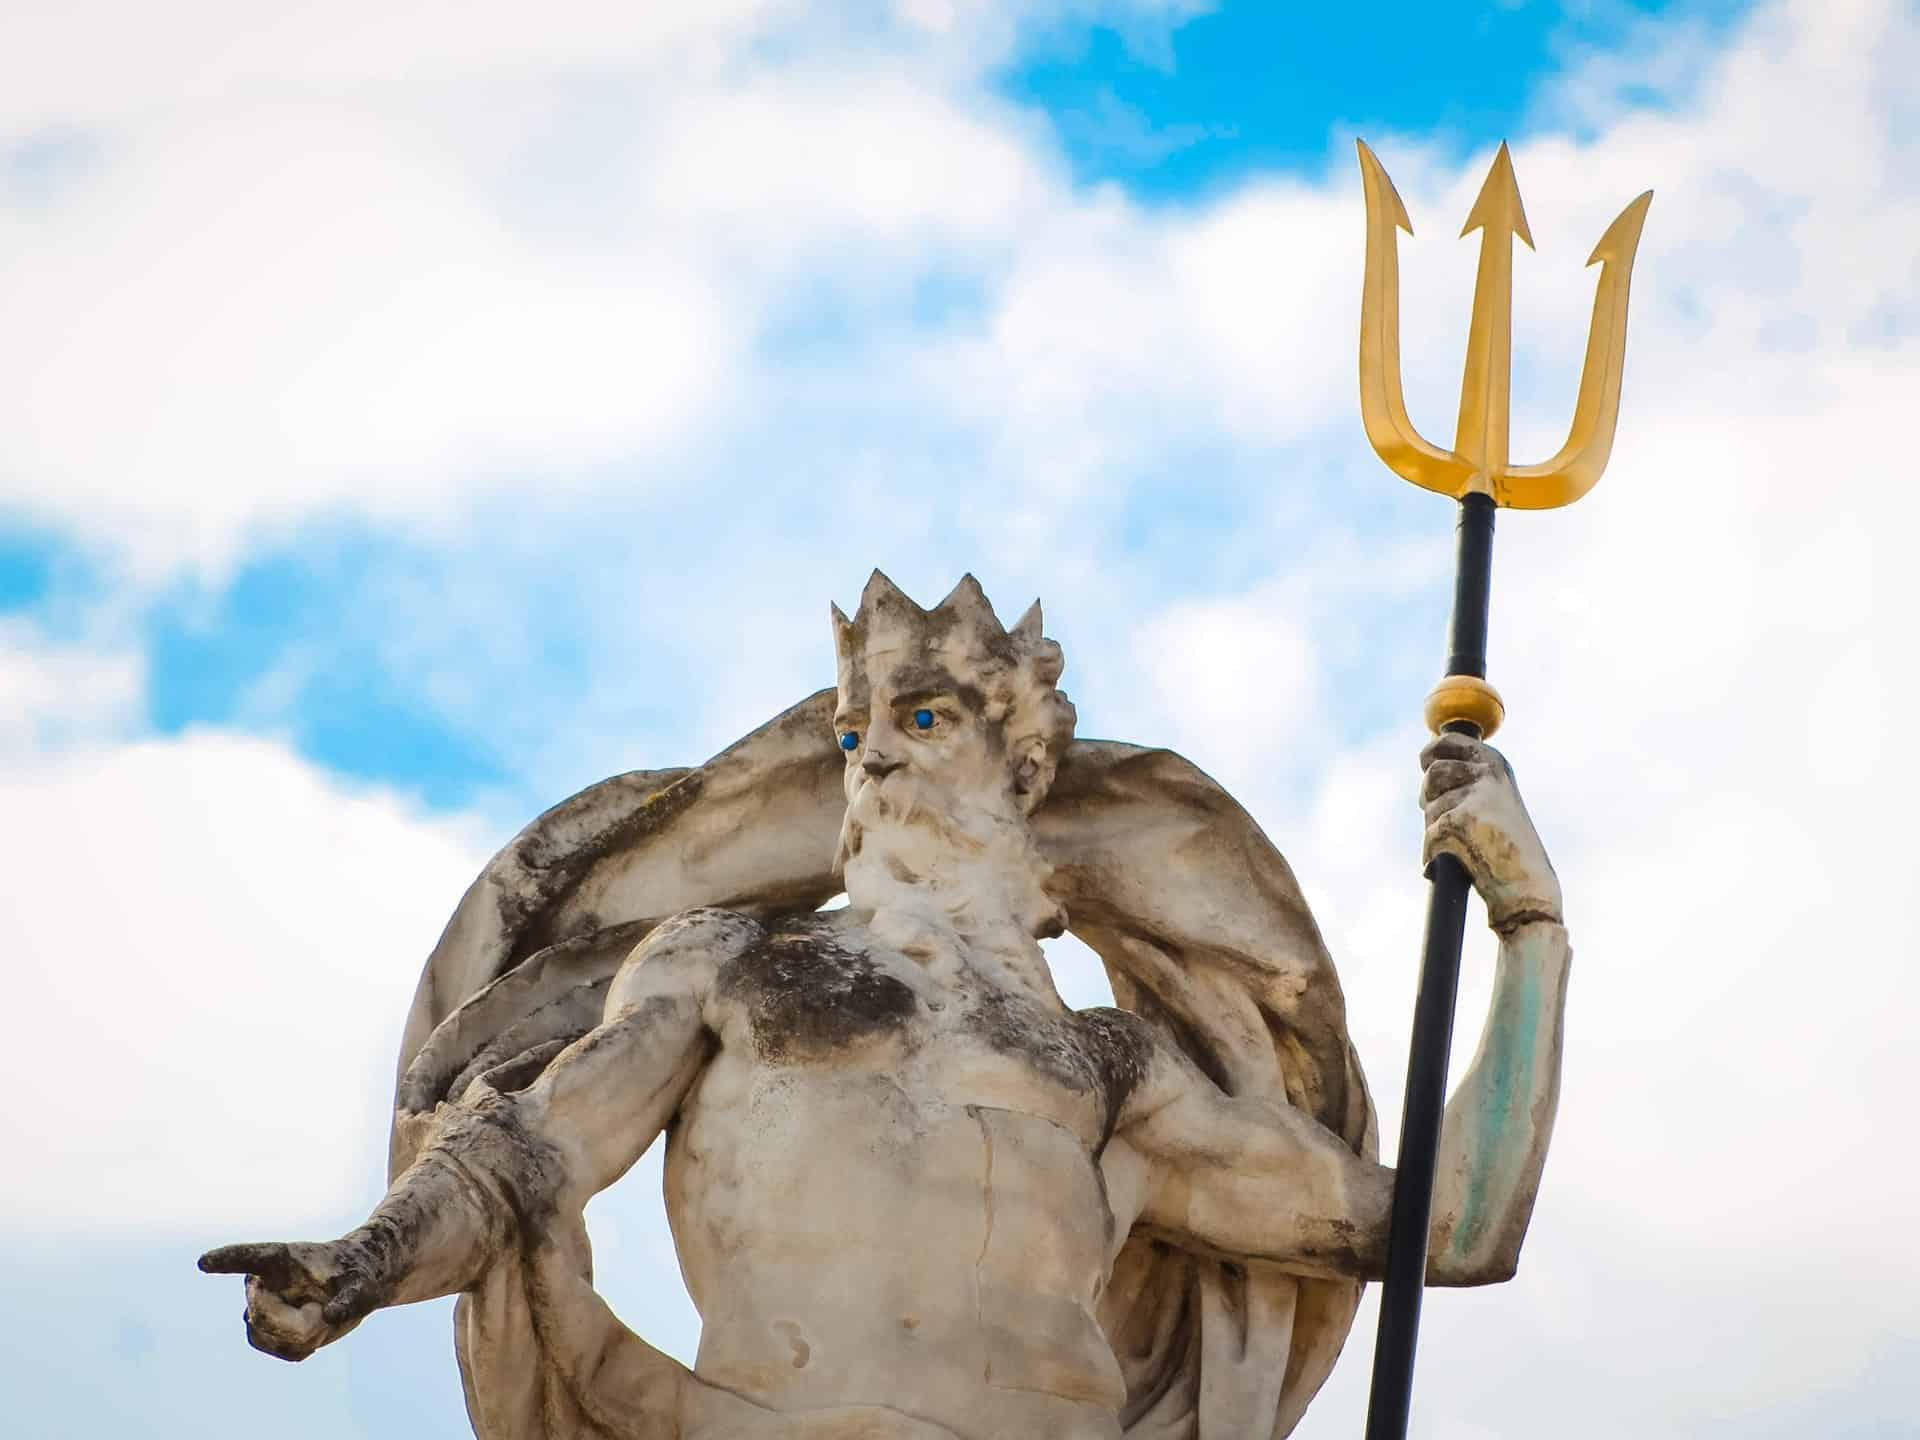 Neptune with trident statue